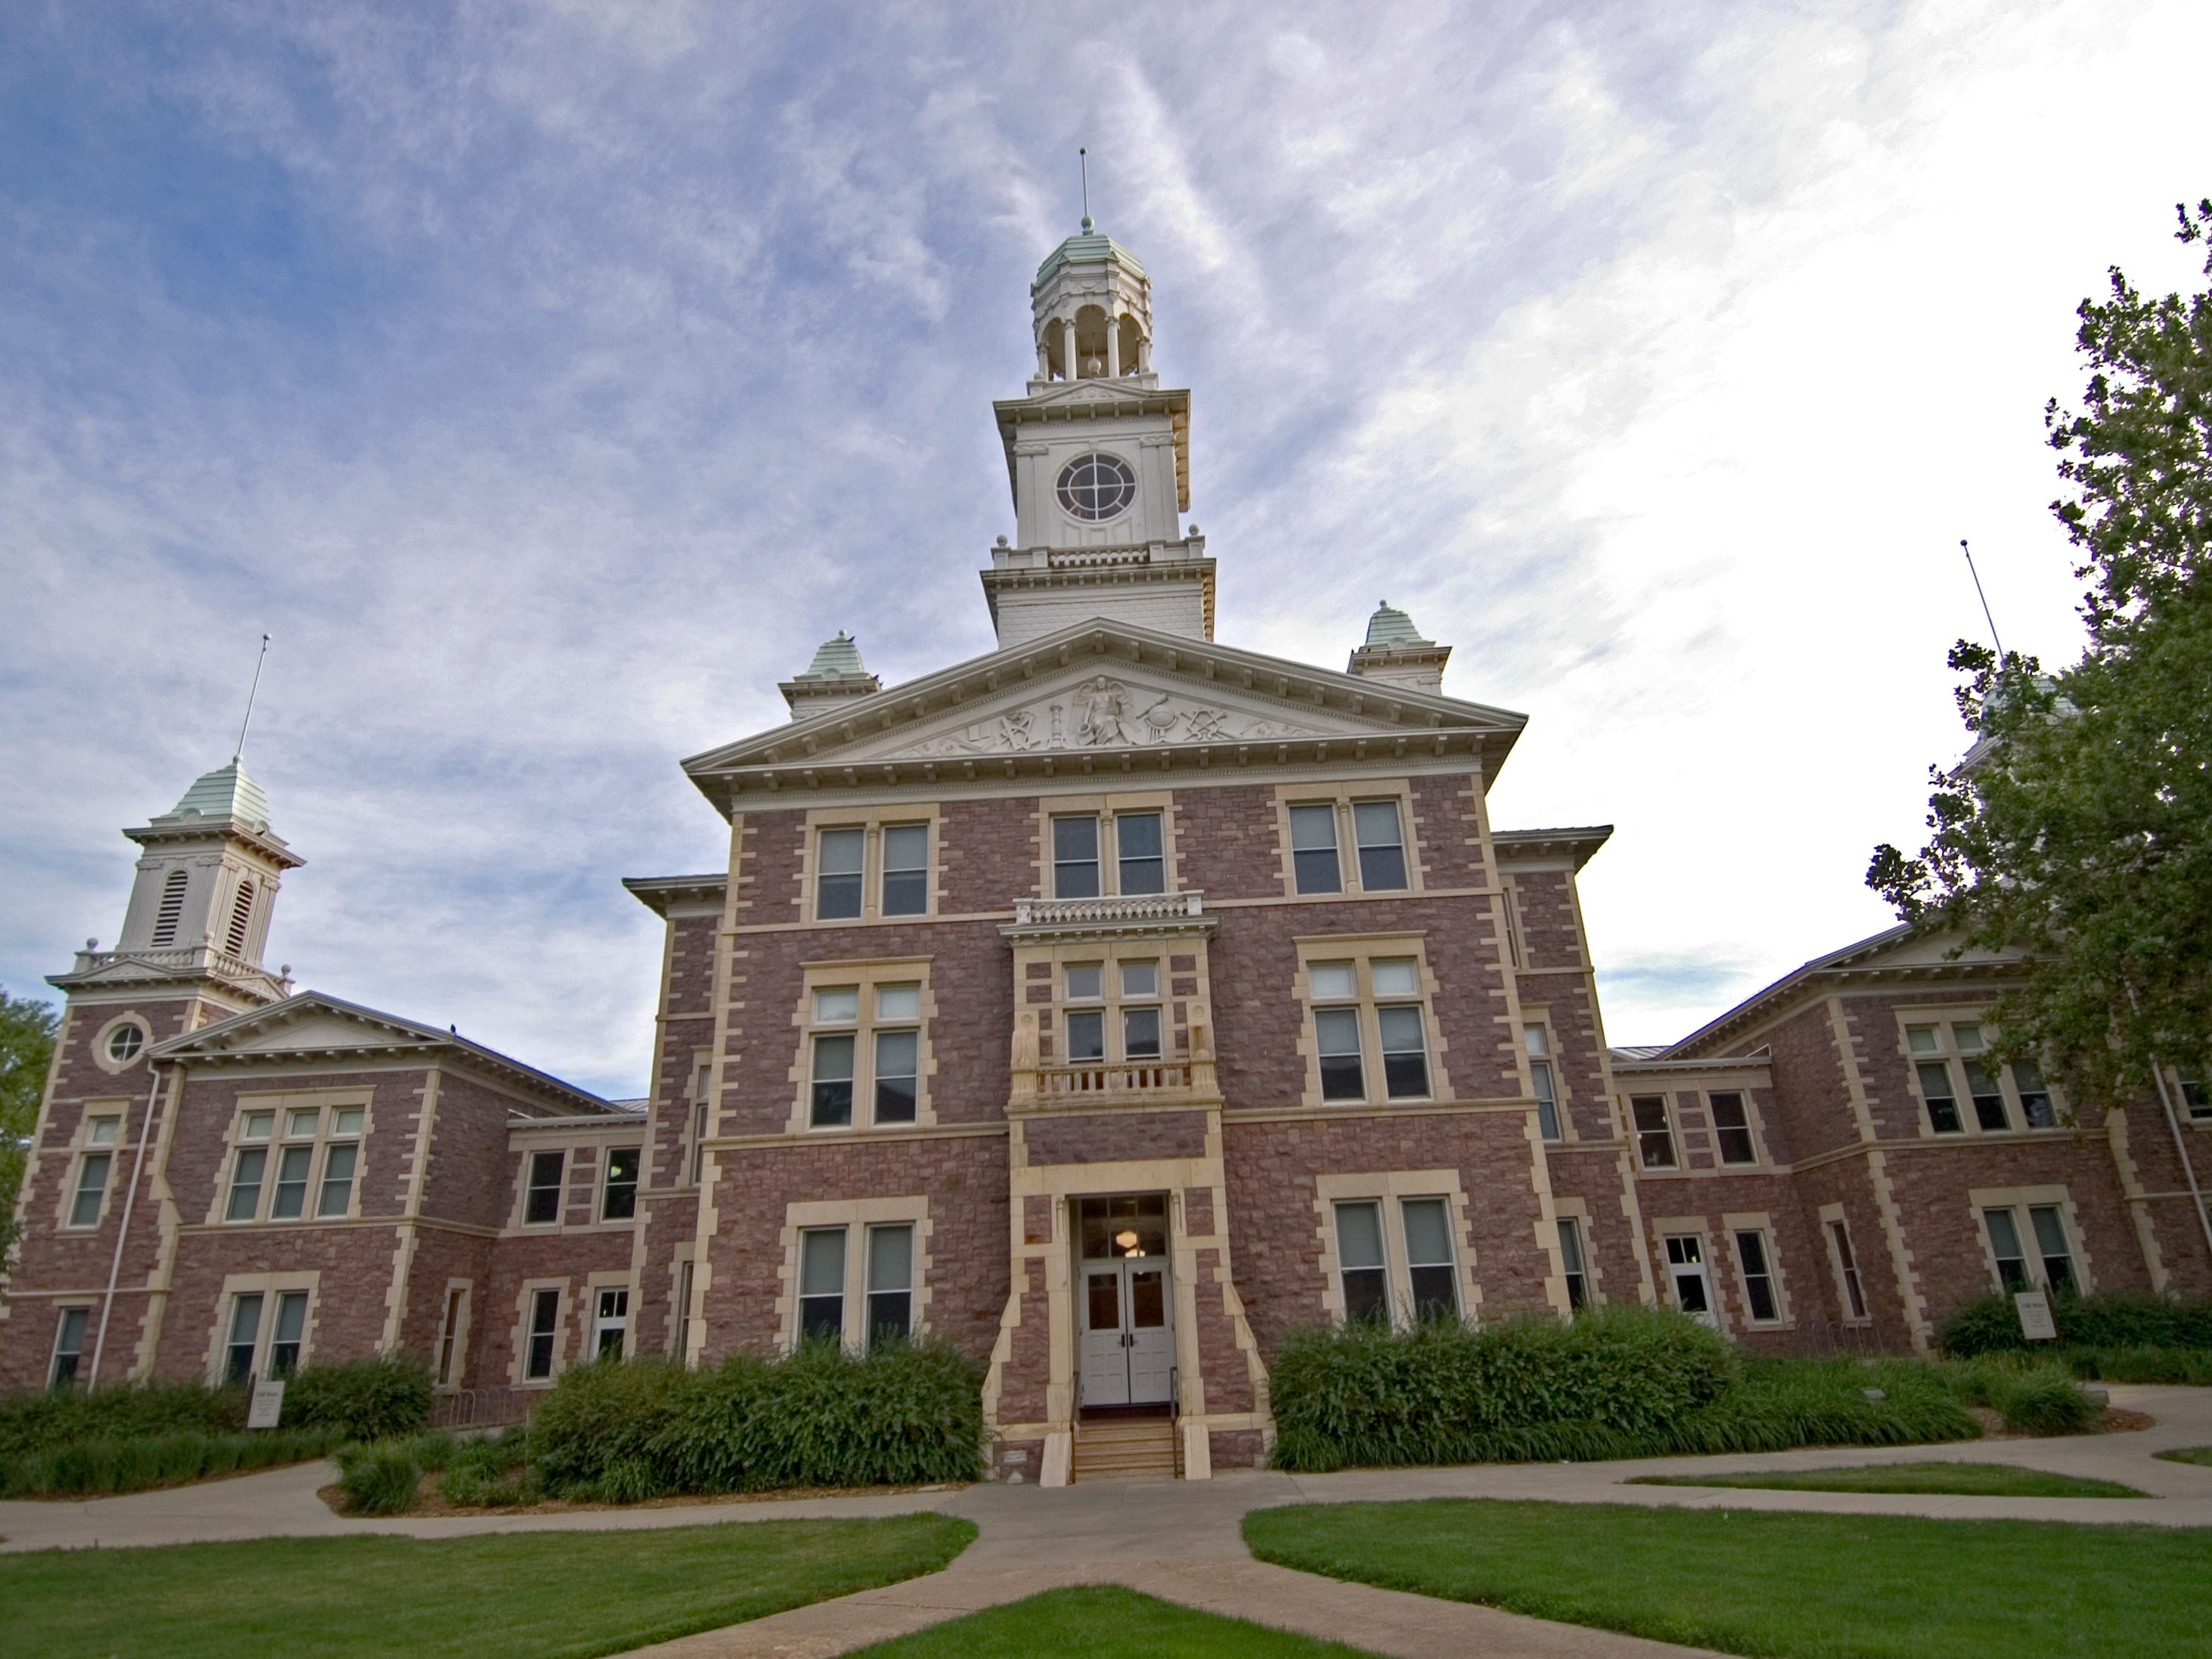 South Dakota: Old Main is the oldest building on the University of South Dakota campus in Vermillion. In addition to being on the National Register of Historic Places, the building is home to classrooms, offices and a cozy auditorium known as Farber Hall.